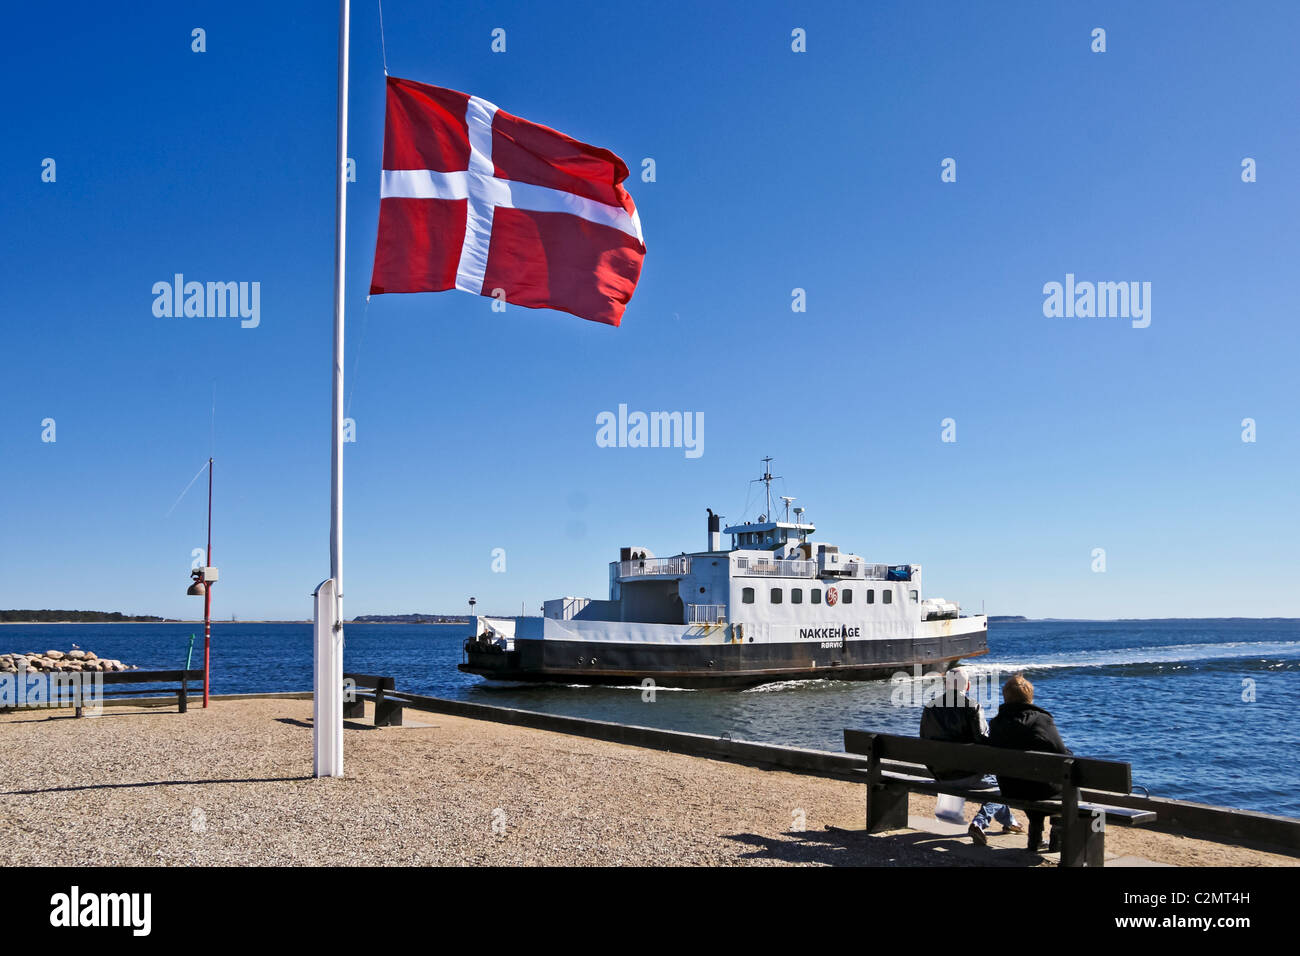 The Roervig-Hundested ferry Nakkehage arriving at Roervig on the anniversary day of Denmark's invasion by Germany - Stock Image